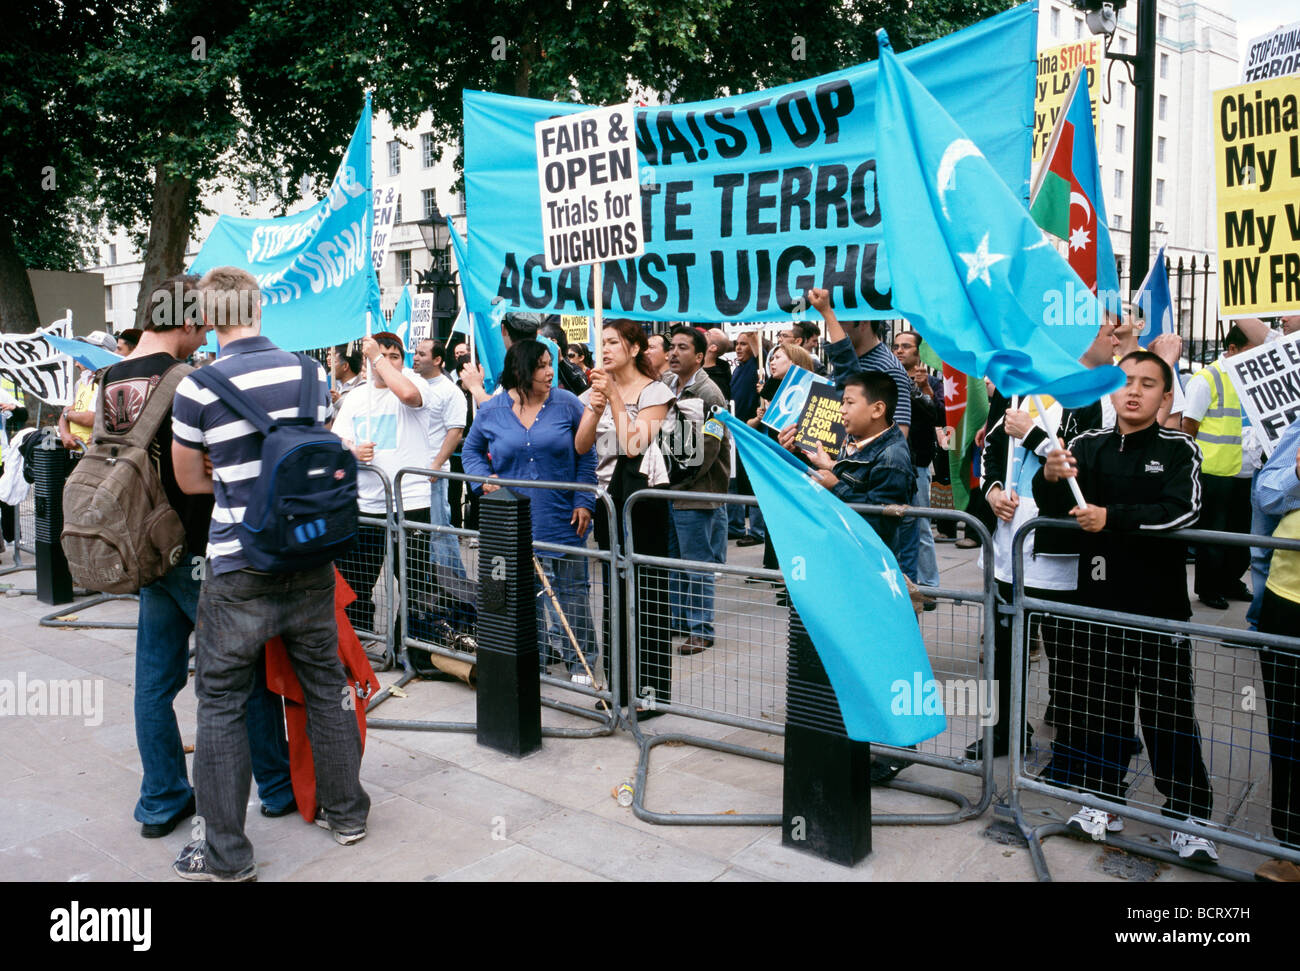 July 15, 2009 - Uighur protesters opposite Downing Street No 10 in London. Stock Photo